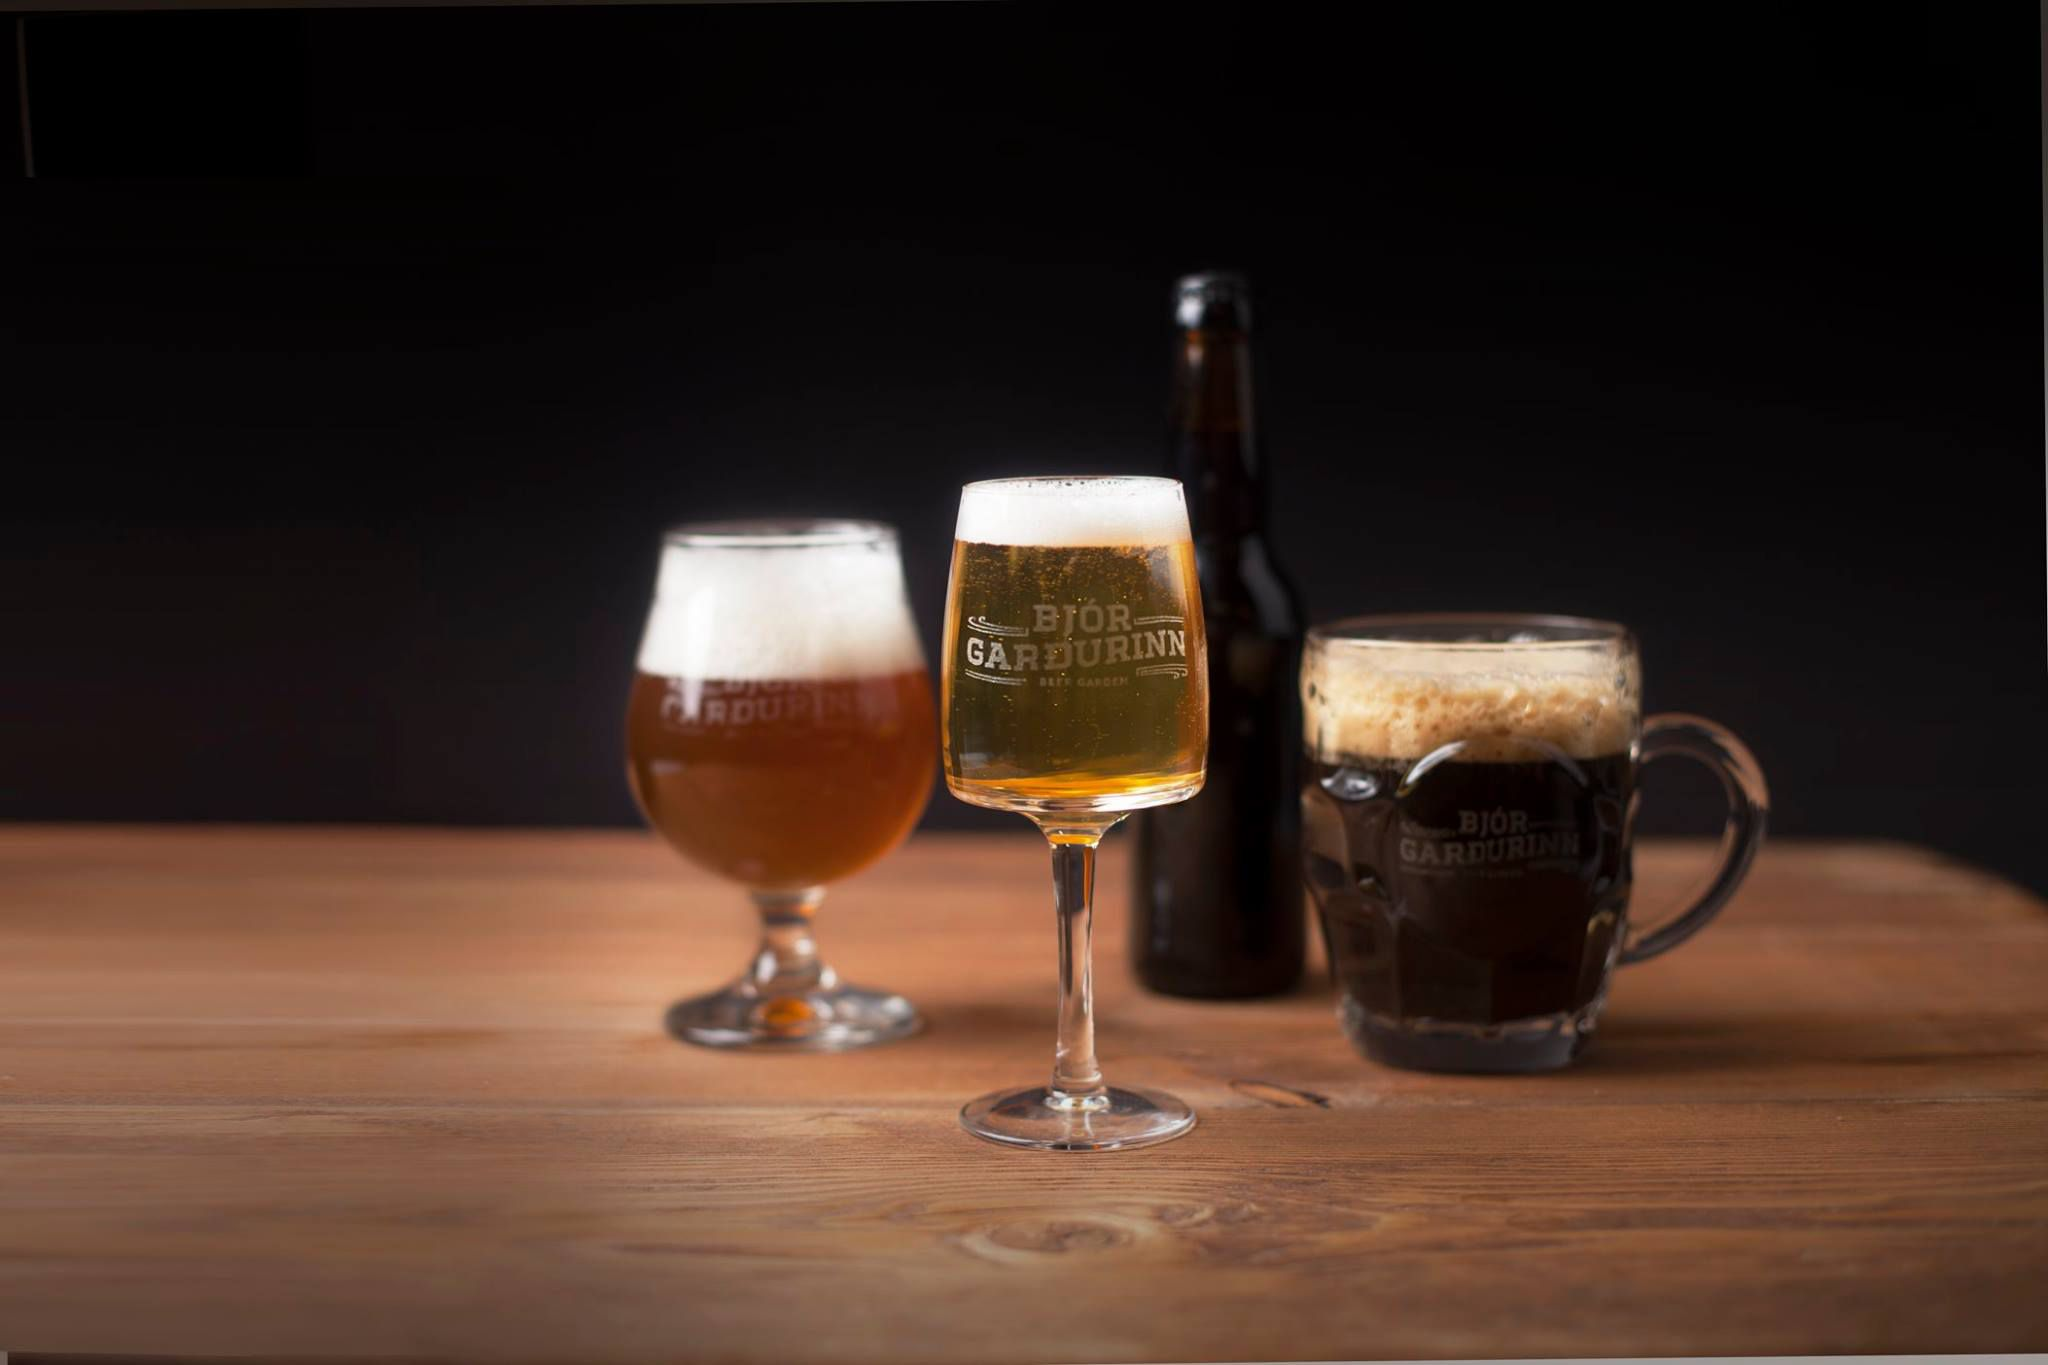 Three glasses filled with different kinds of beers and one beer bottle on a wooden table